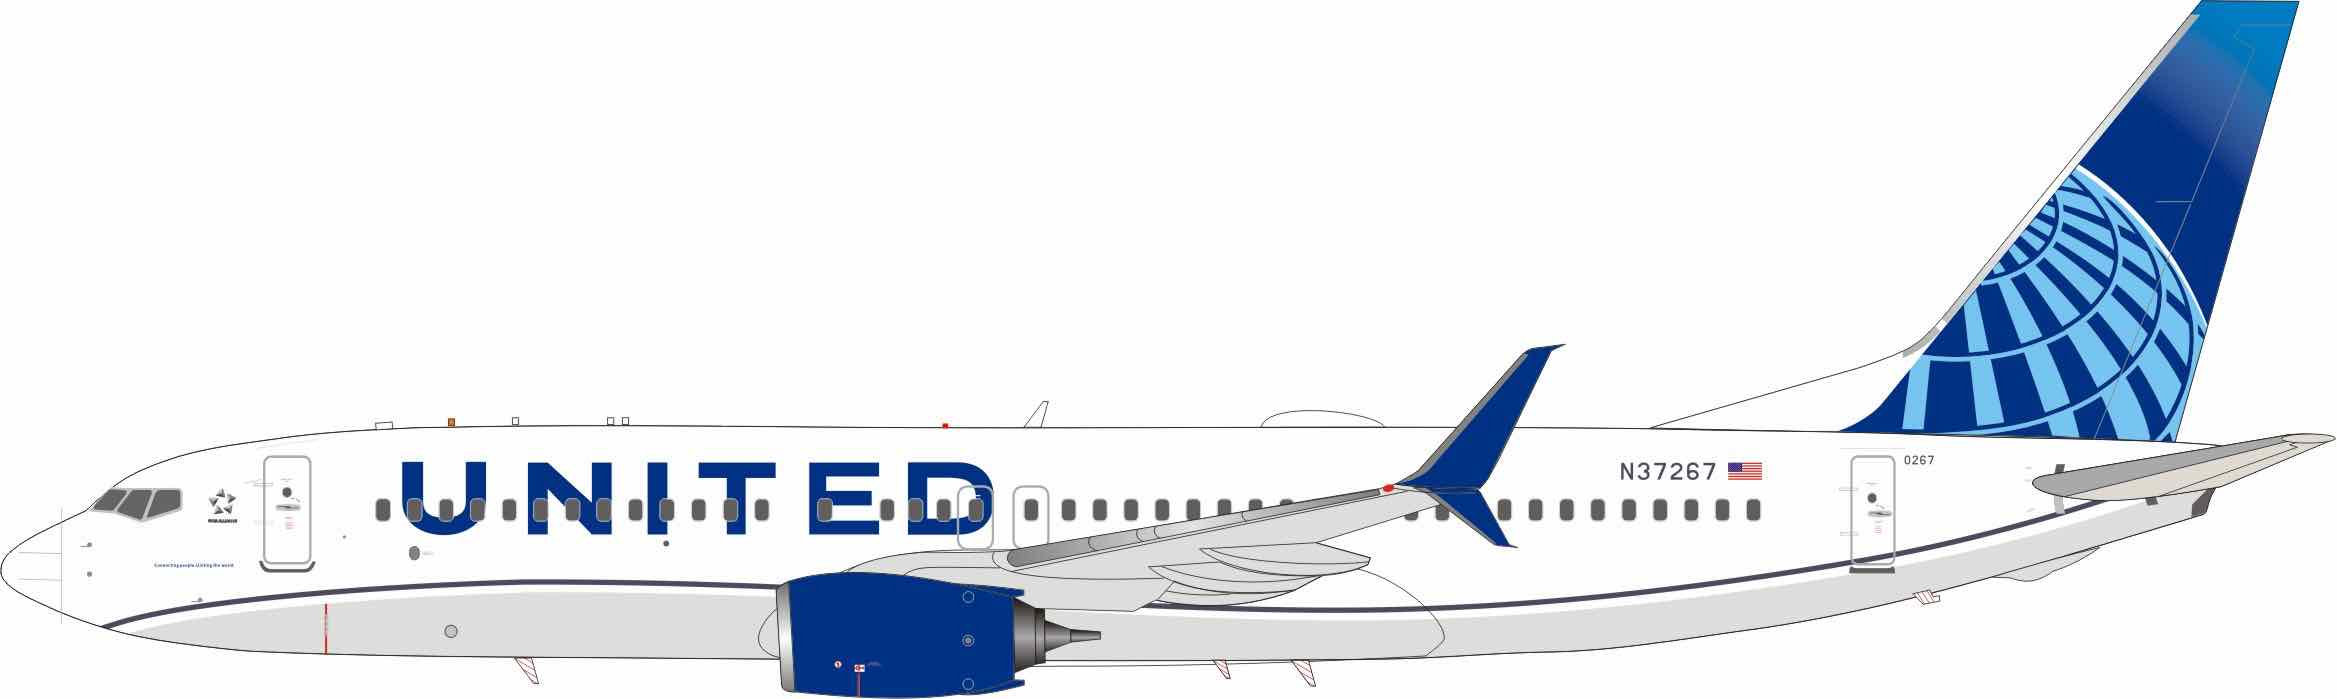 """United Airlines 737-800 N37267 2020 Colors (1:200) """"Connecting the World, Uniting People"""""""